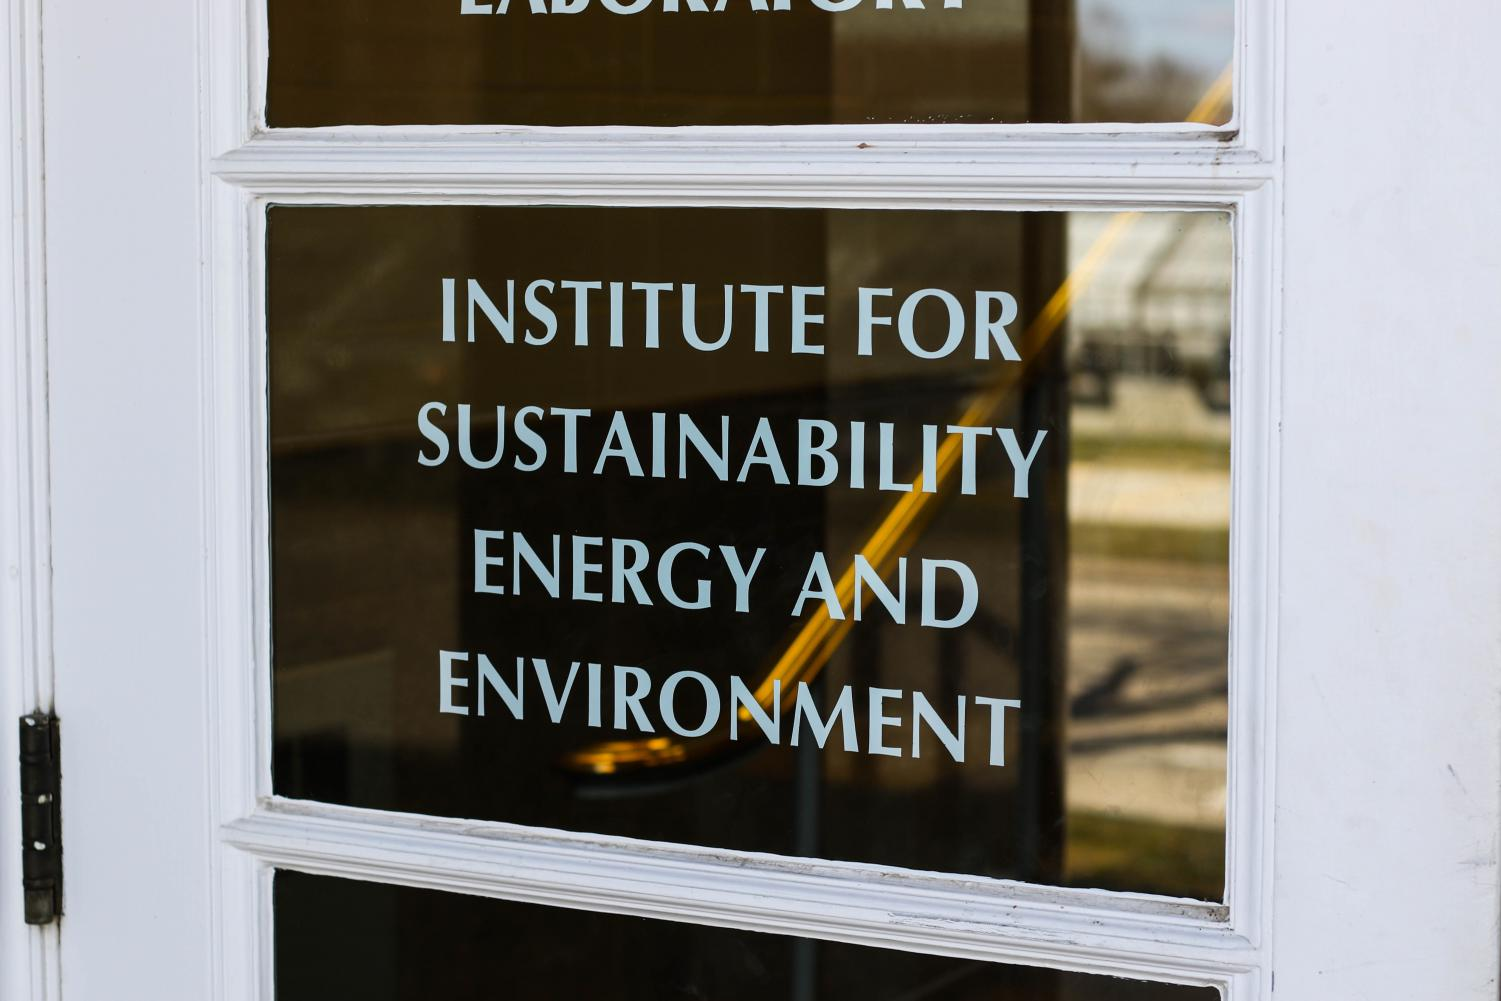 The office for the Institute for Sustainability Energy and Environment is located at 1101 W. Peabody Drive, Suite 350 in Urbana. The Institute supports the Crops in silico Project.